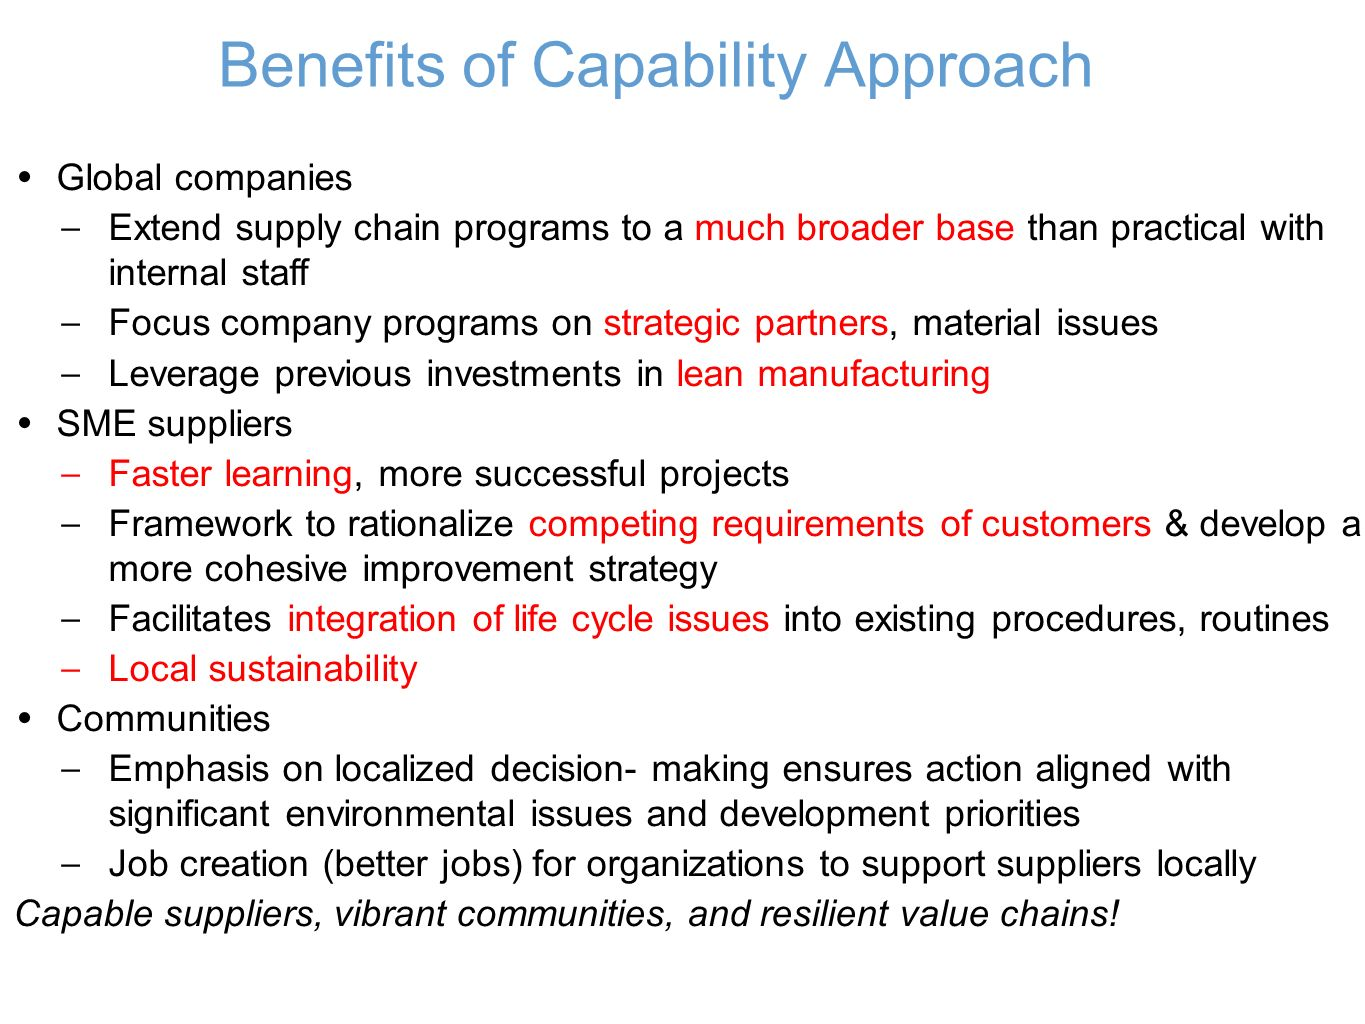 Benefits of Capability Approach Global companies – Extend supply chain programs to a much broader base than practical with internal staff – Focus company programs on strategic partners, material issues – Leverage previous investments in lean manufacturing SME suppliers – Faster learning, more successful projects – Framework to rationalize competing requirements of customers & develop a more cohesive improvement strategy – Facilitates integration of life cycle issues into existing procedures, routines – Local sustainability Communities – Emphasis on localized decision- making ensures action aligned with significant environmental issues and development priorities – Job creation (better jobs) for organizations to support suppliers locally Capable suppliers, vibrant communities, and resilient value chains!